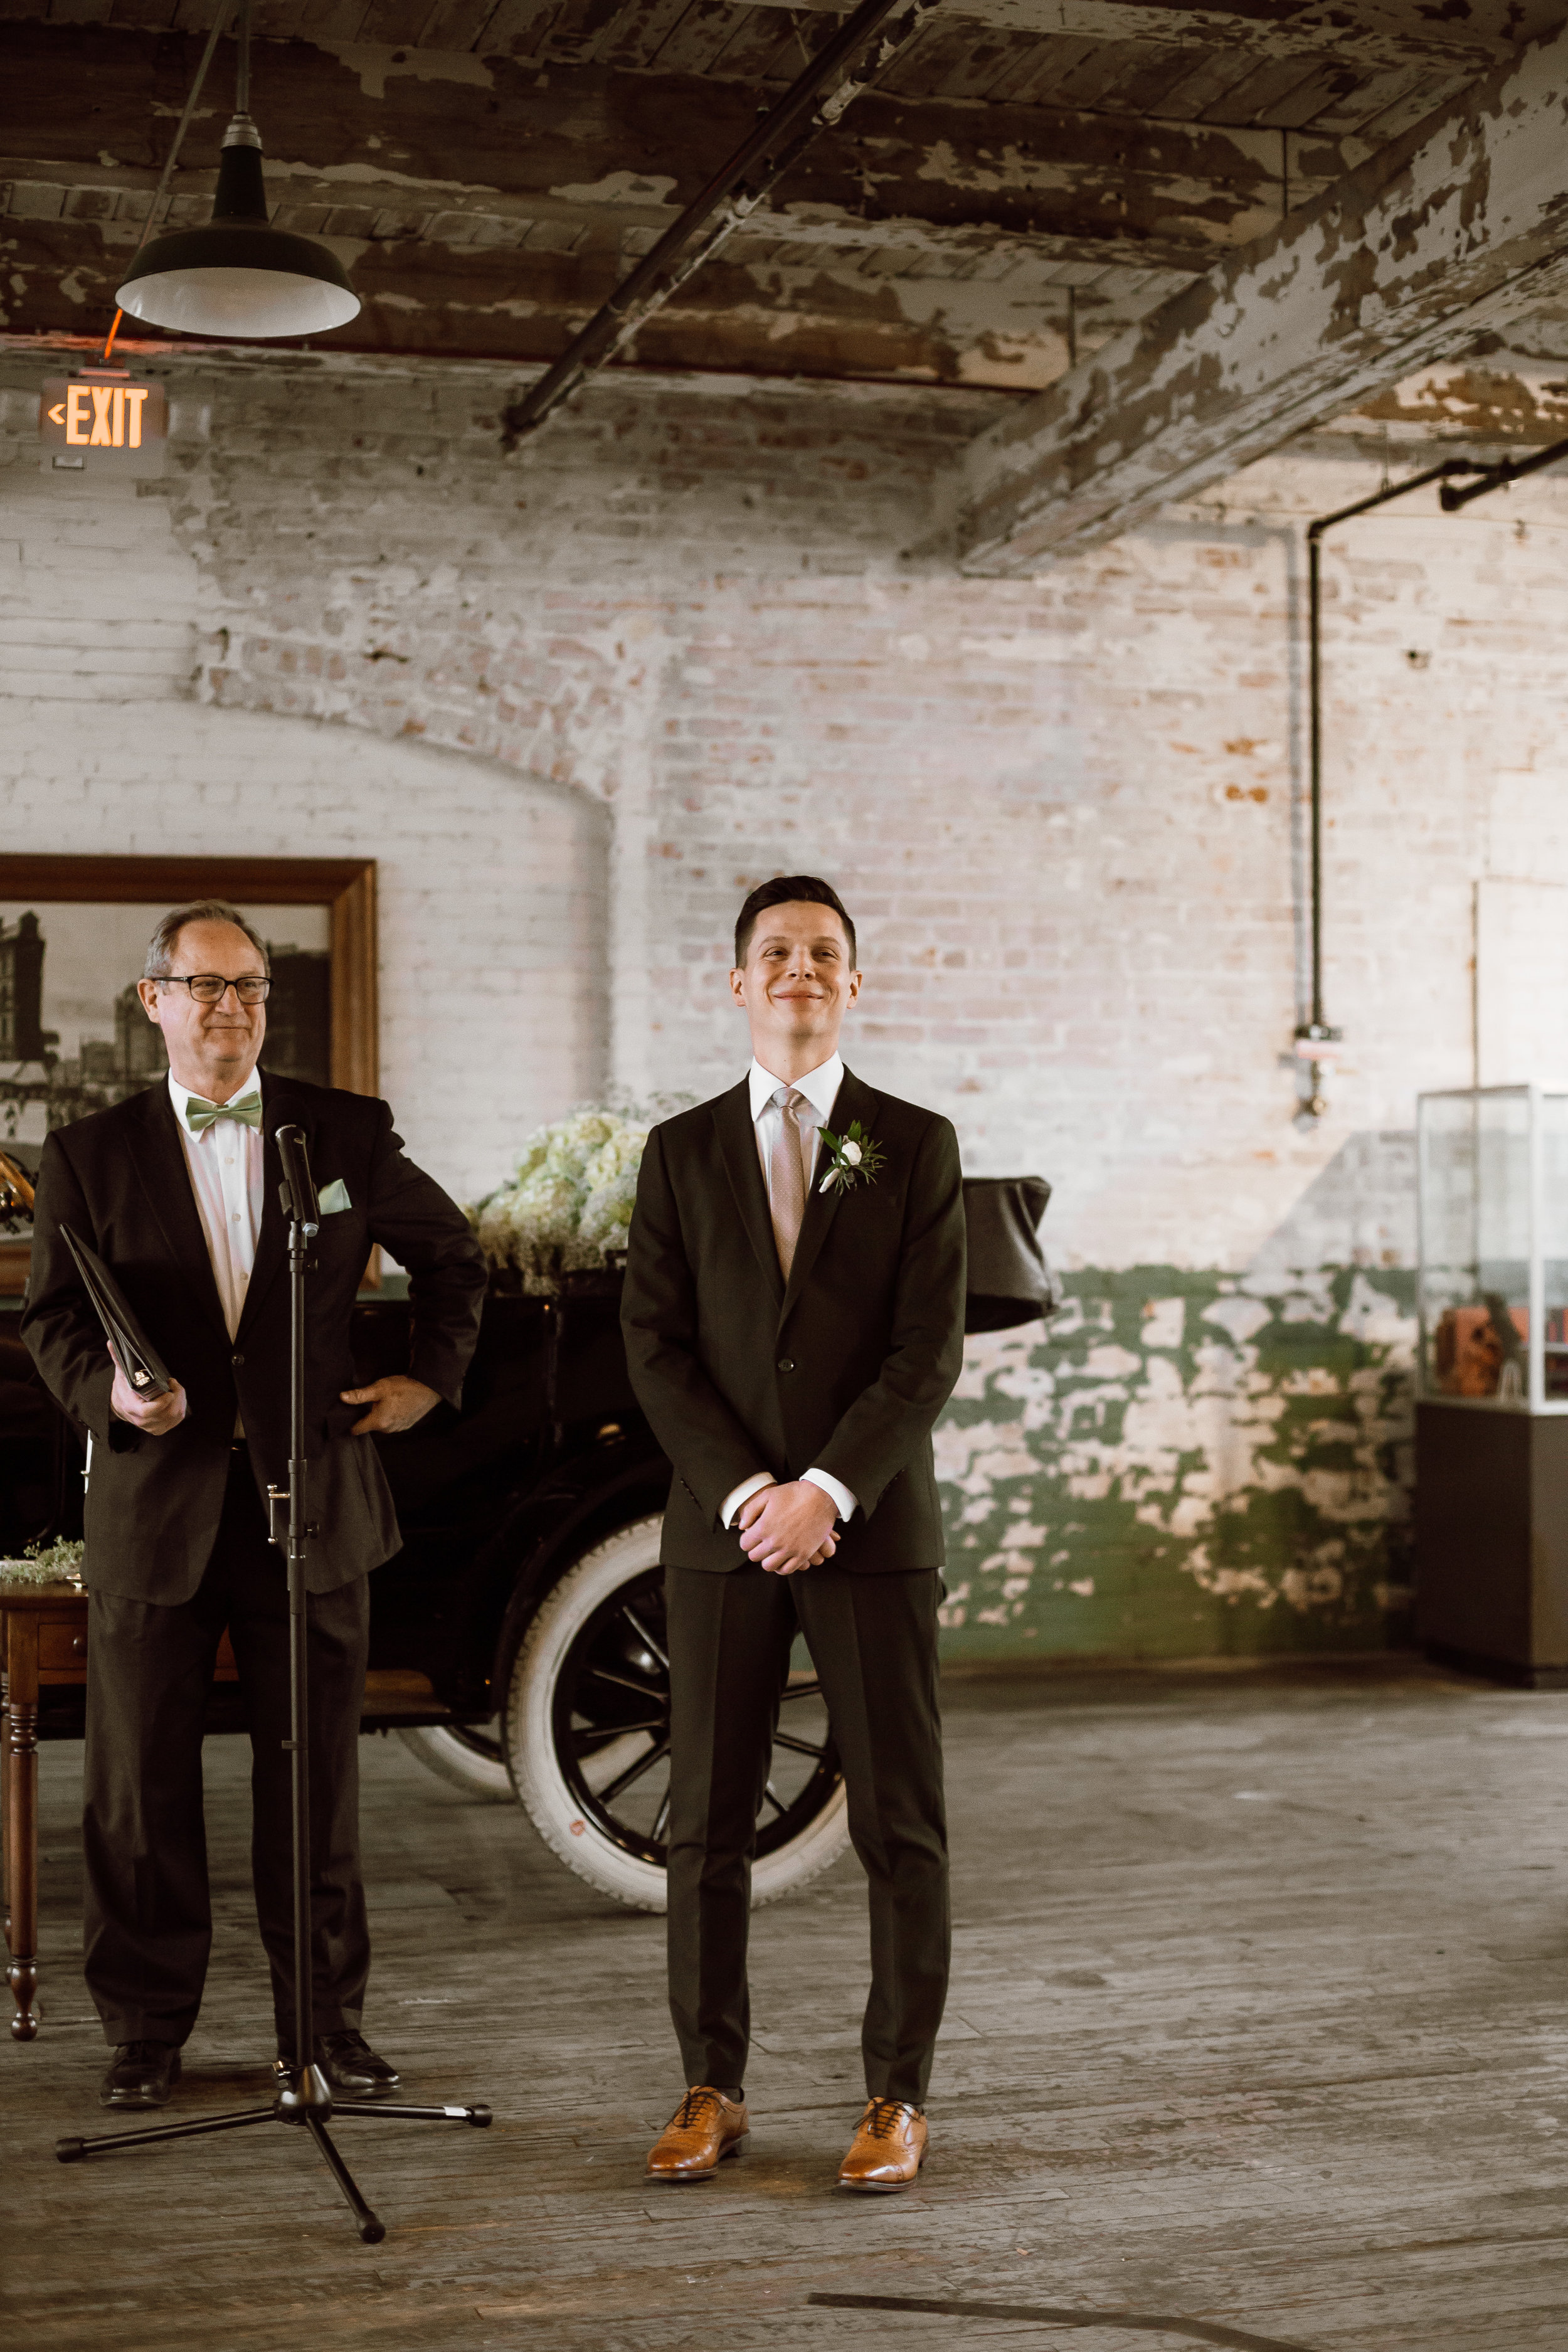 Katie_Vonasek_Photography_Ford_Piquette_Plant_Wedding_Detroit60.JPG